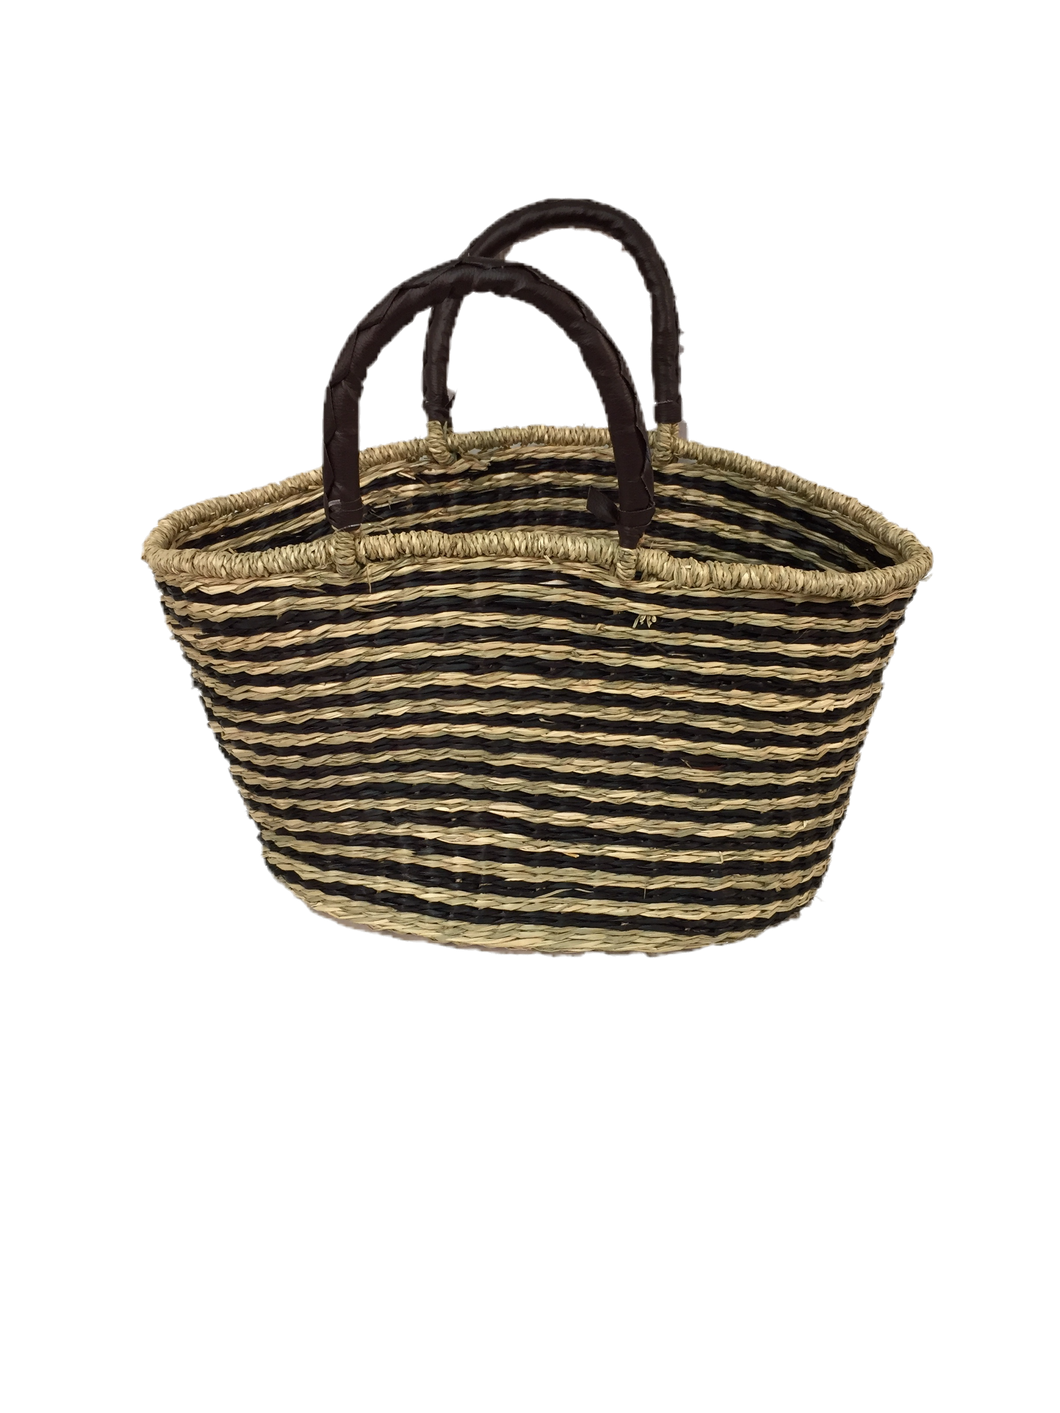 Seagrass Oval Bag - VAS11262C (19x10x11